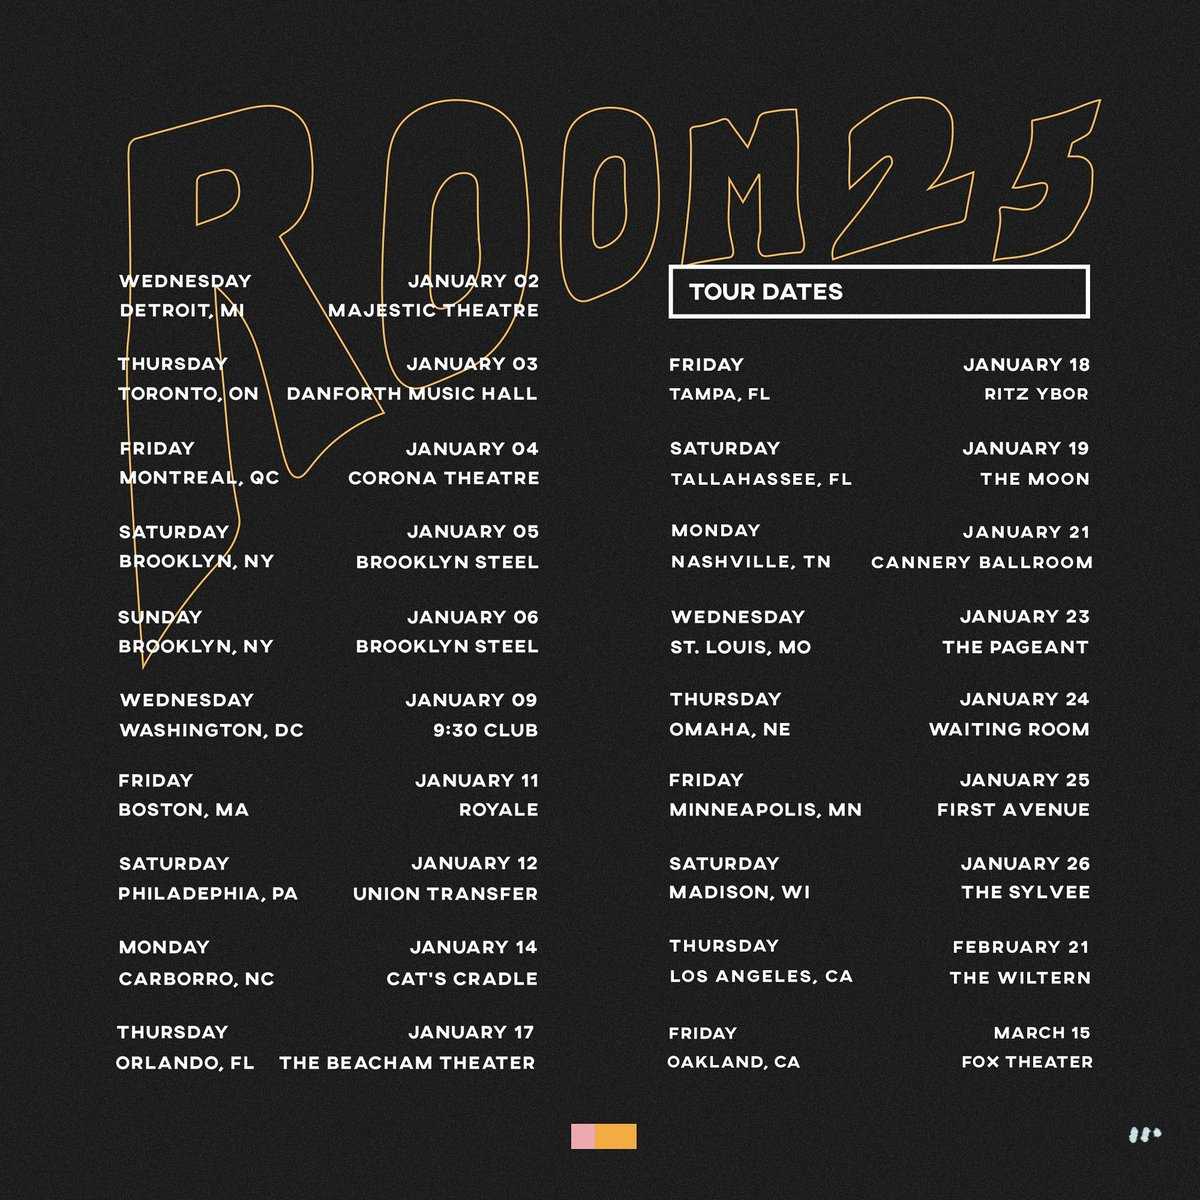 Really excited for this Room 25 tour! Tickets available @ nonamehiding.com